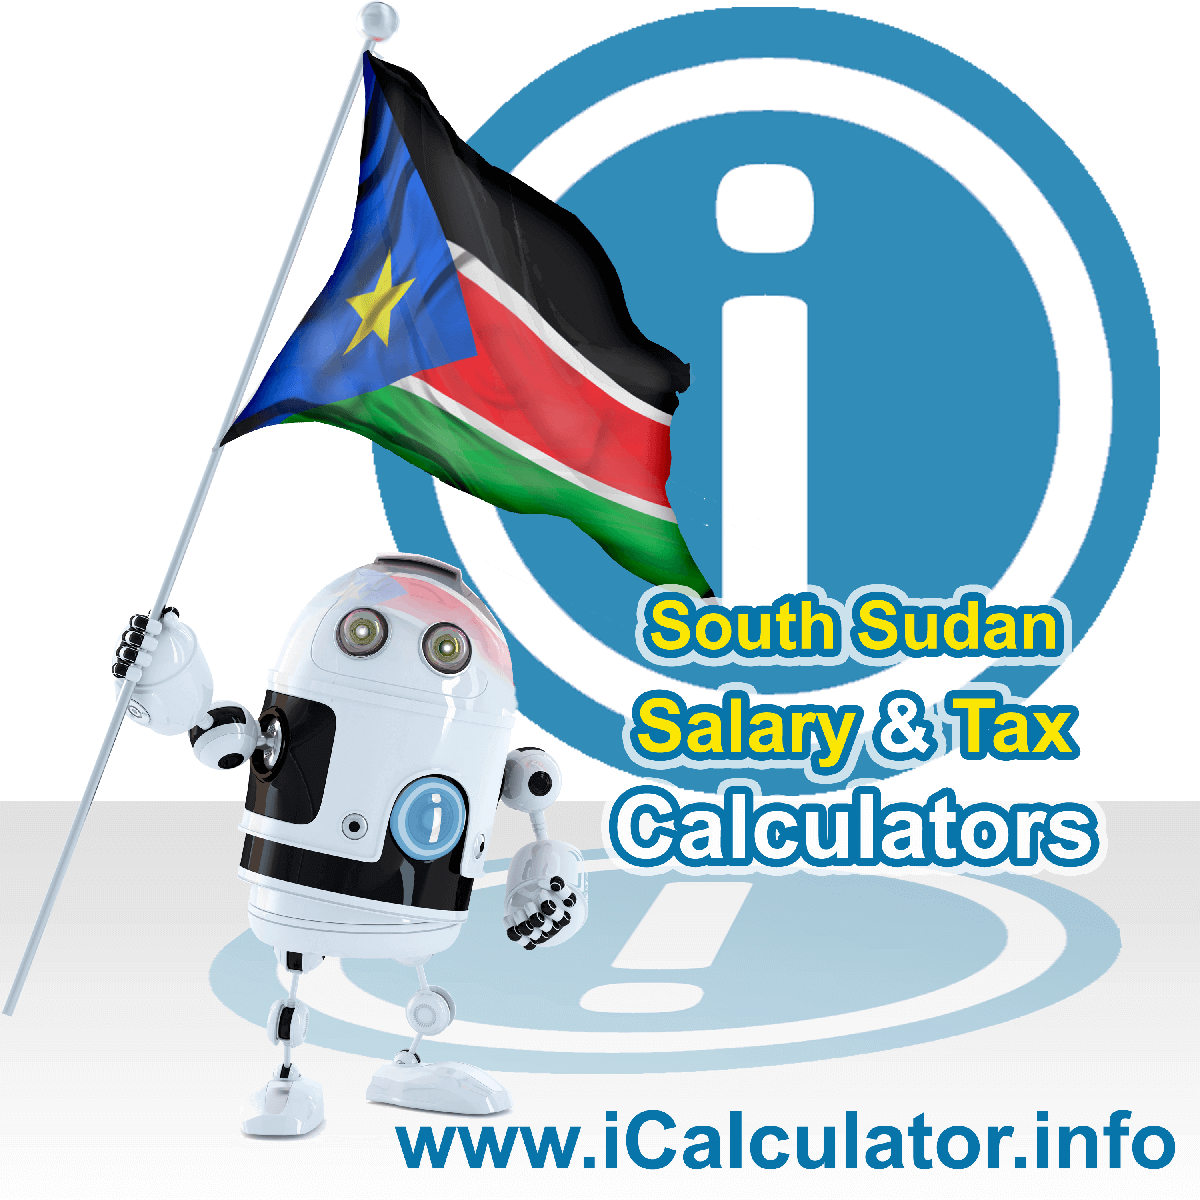 South Sudan Wage Calculator. This image shows the South Sudan flag and information relating to the tax formula for the South Sudan Tax Calculator